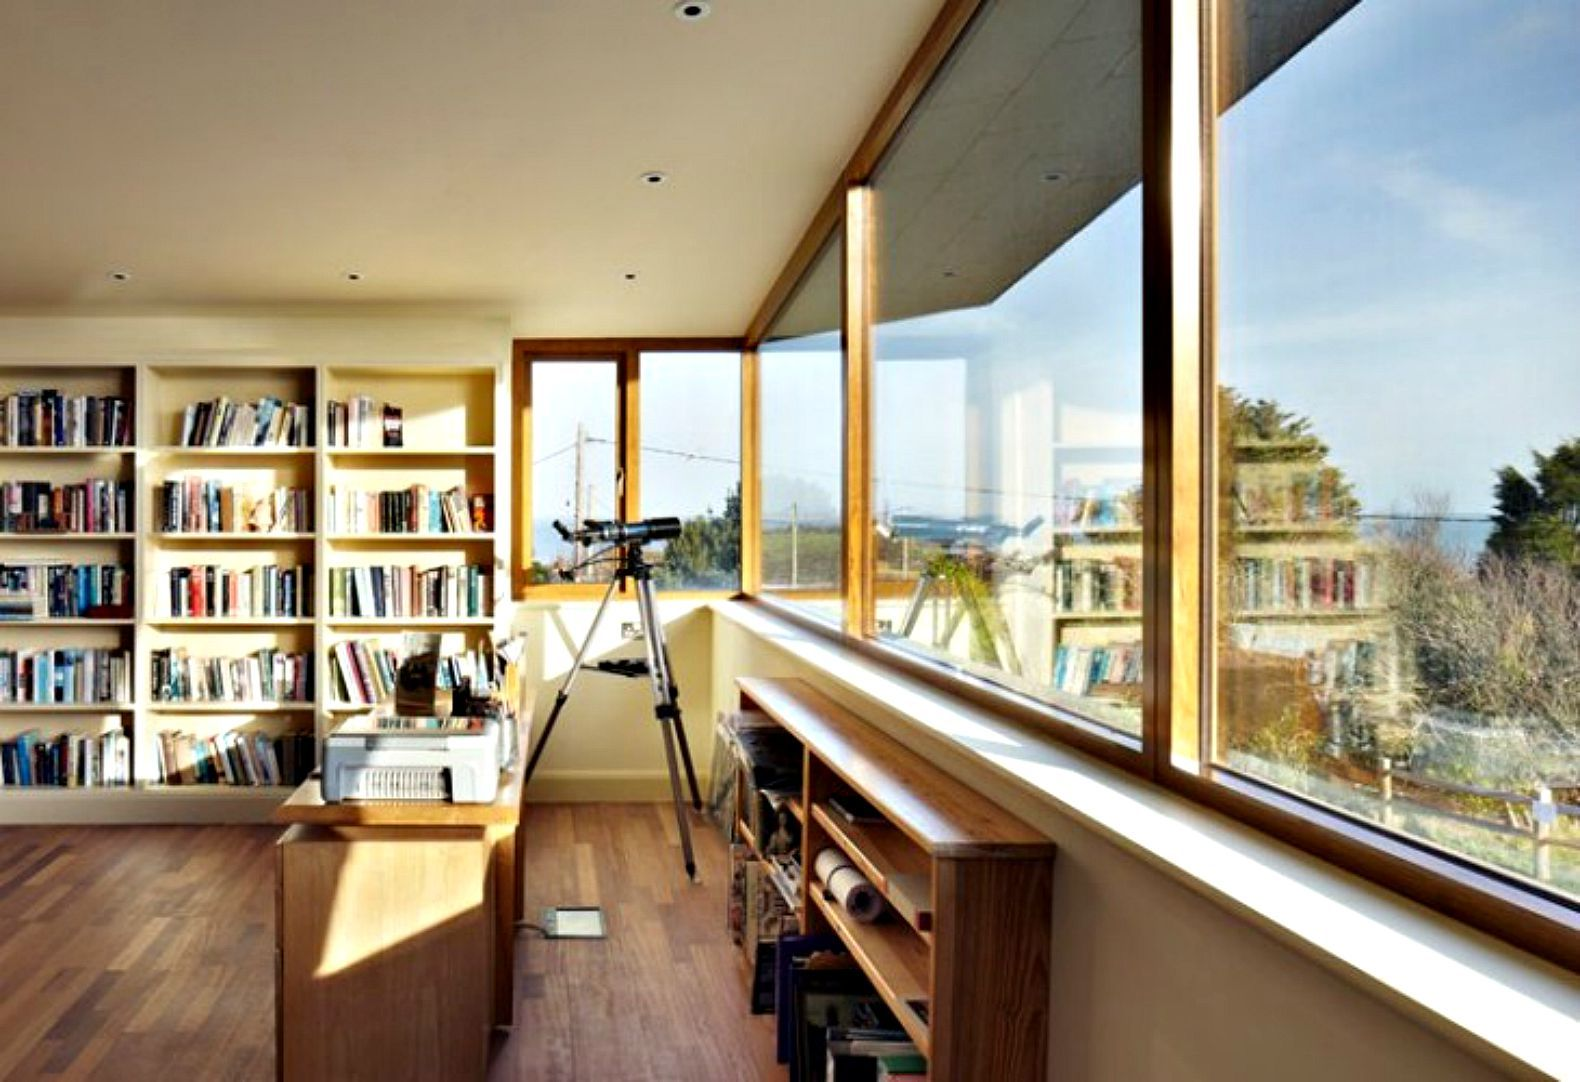 House wooden window design  almanacus sustainable split house adapts to the aging owners